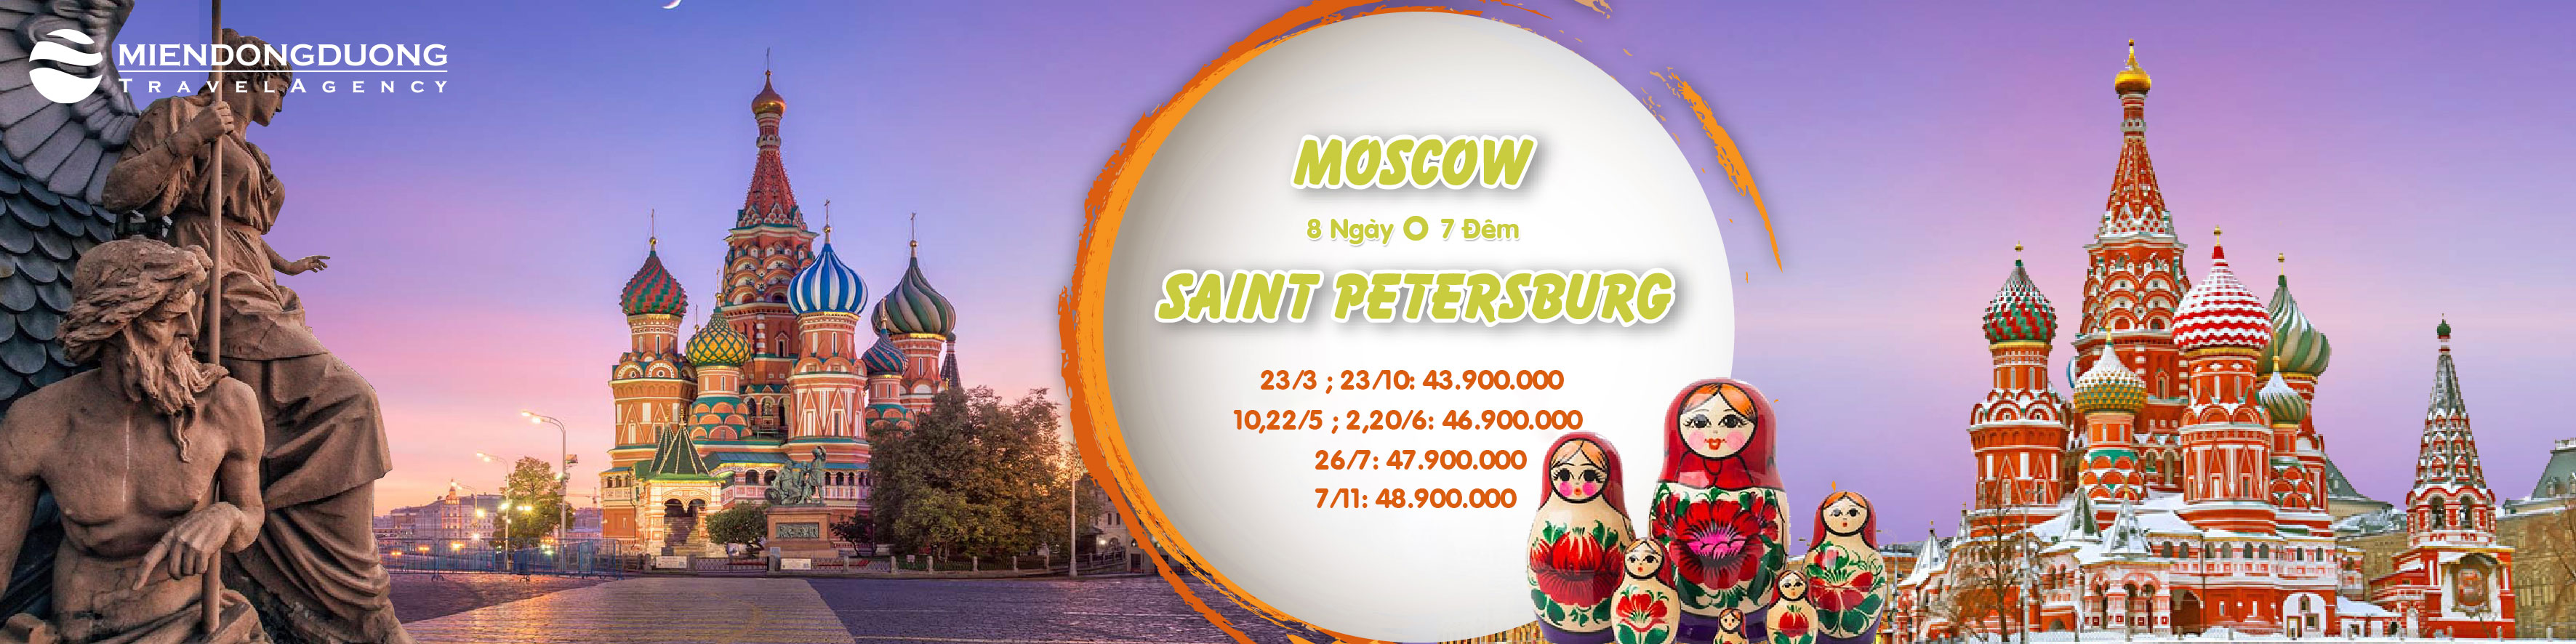 http://miendongduong.com/cung-duong-vang-nuoc-nga-moscow-saint-petersburg